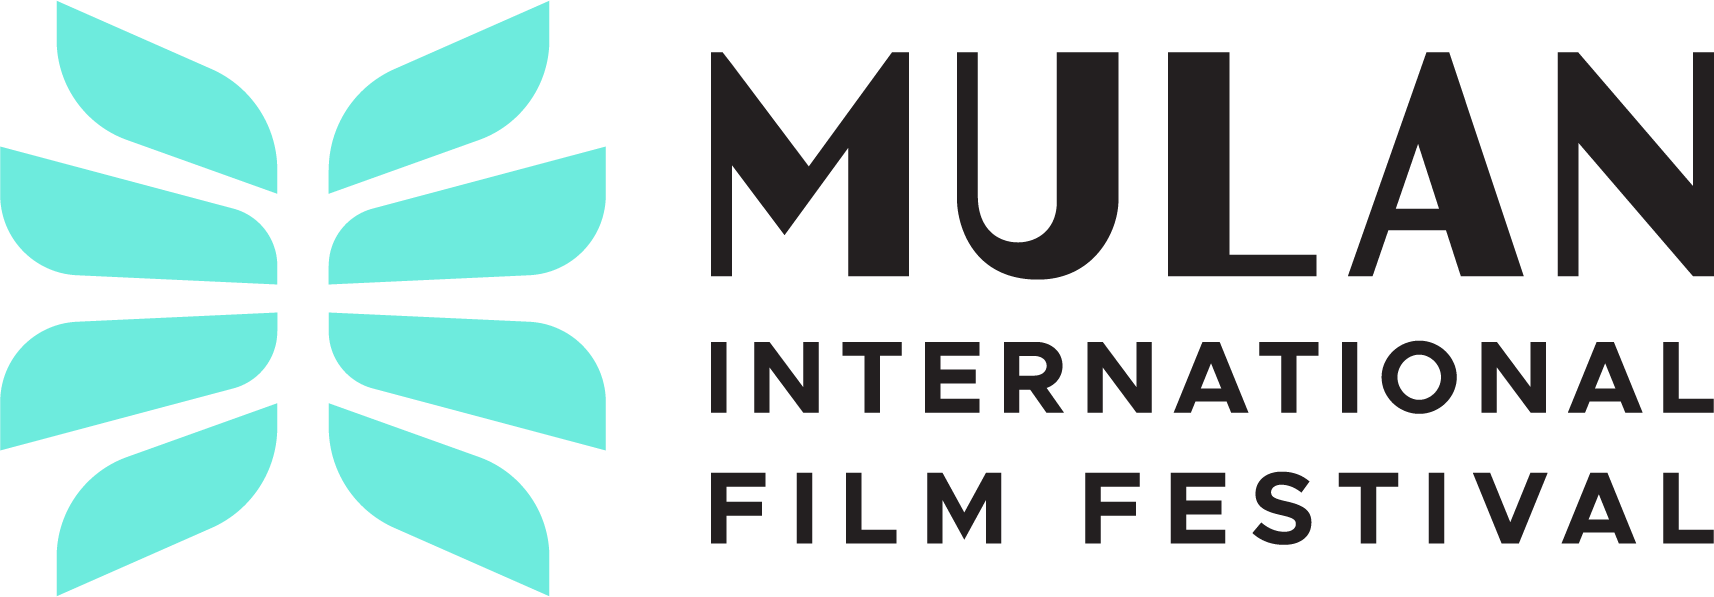 Mulan International Film Festival